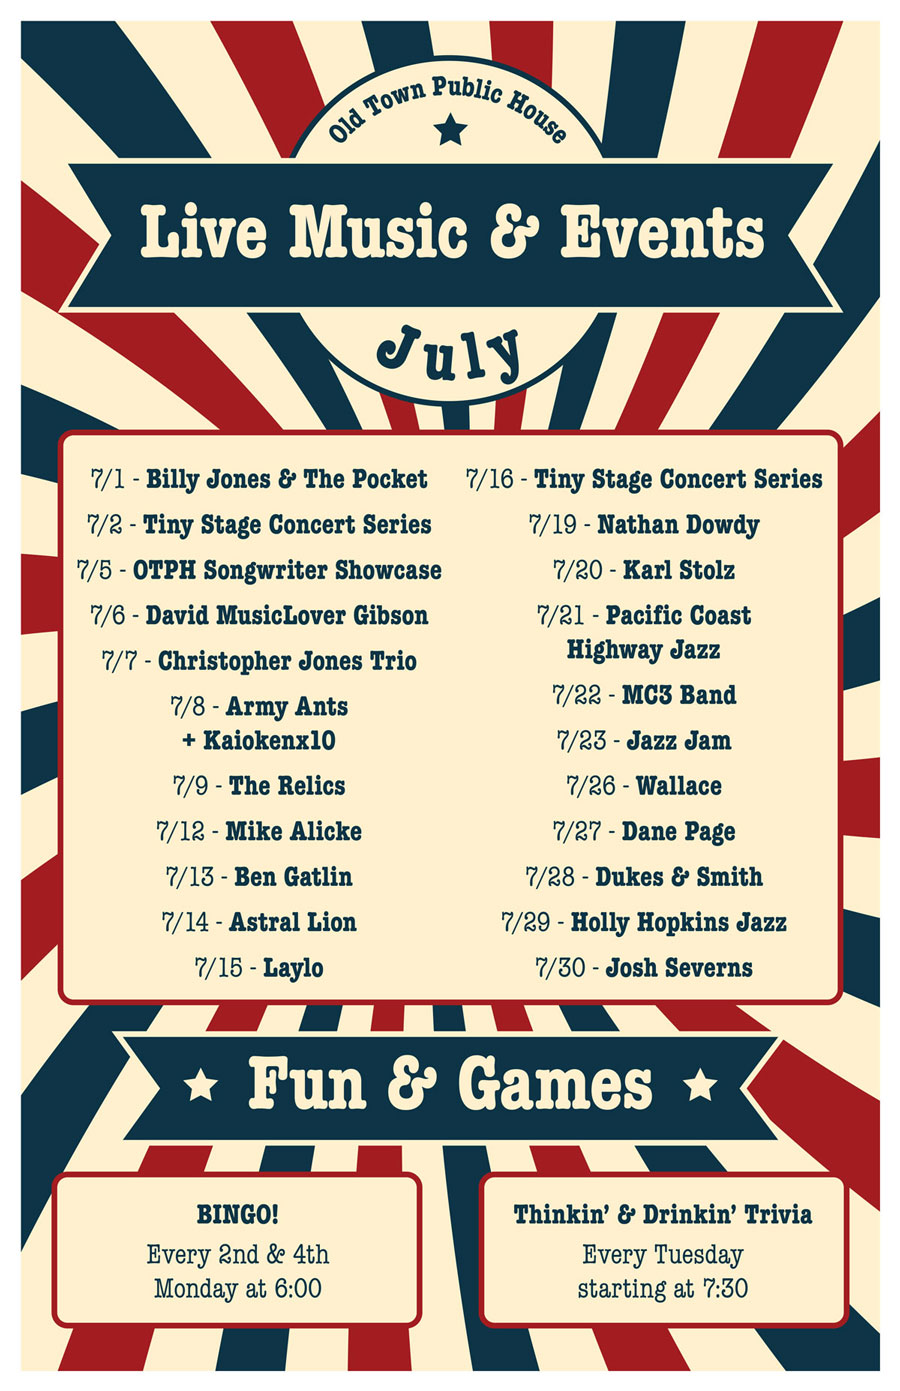 Old Town Public House July Event Calendar